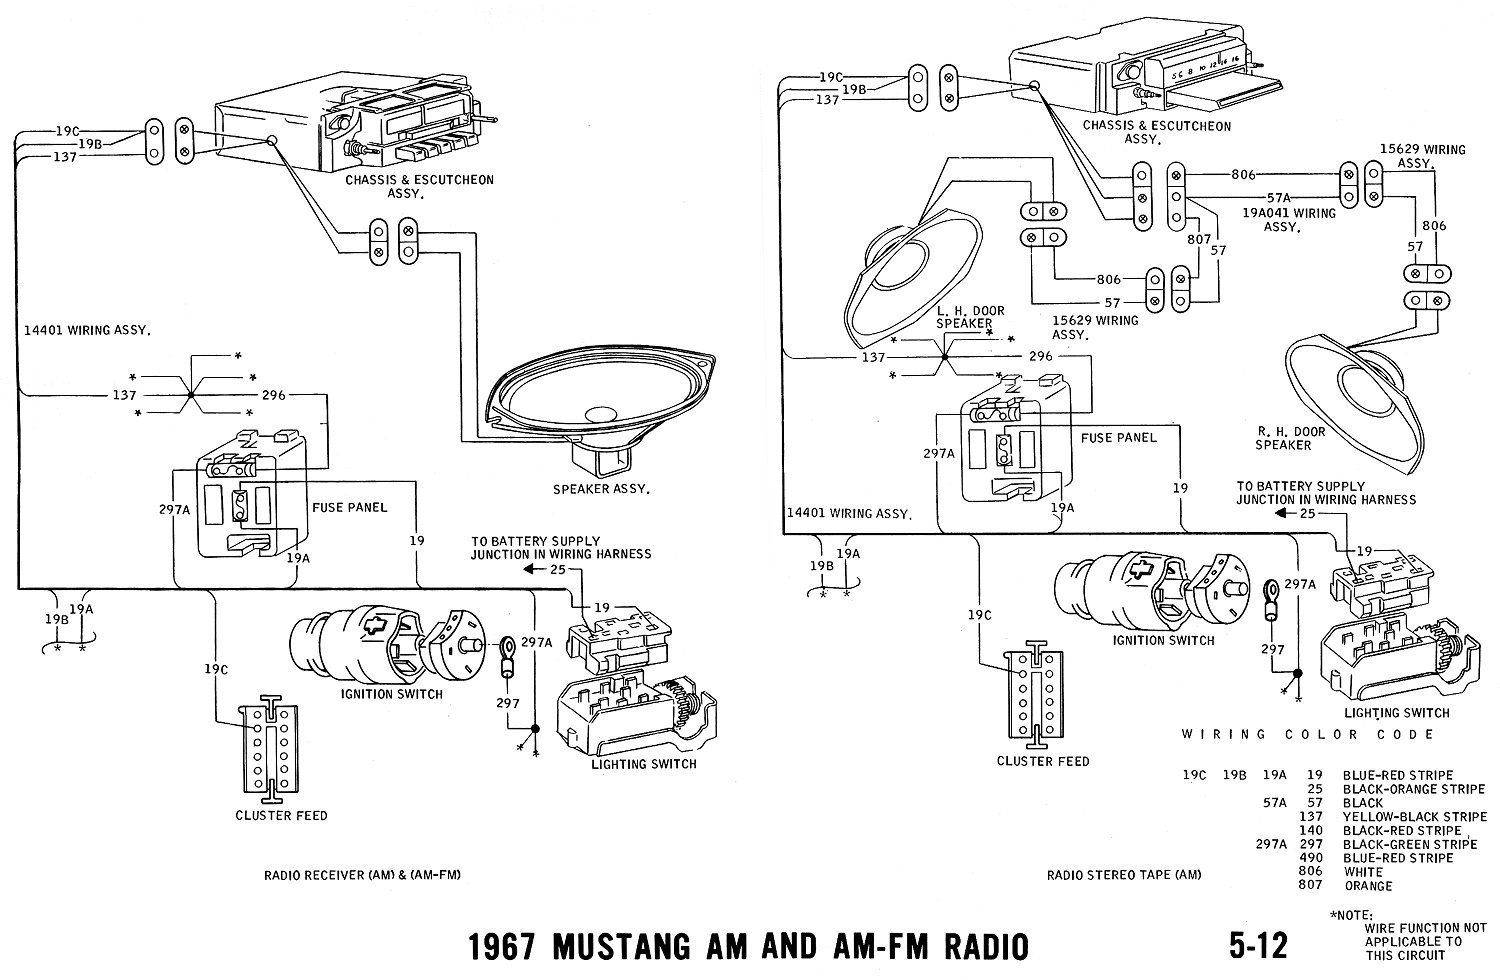 1967 Mustang Wiring Schematic Layout Diagrams Engine Diagram And Vacuum Average Joe Restoration Rh Averagejoerestoration Com Electrical 67